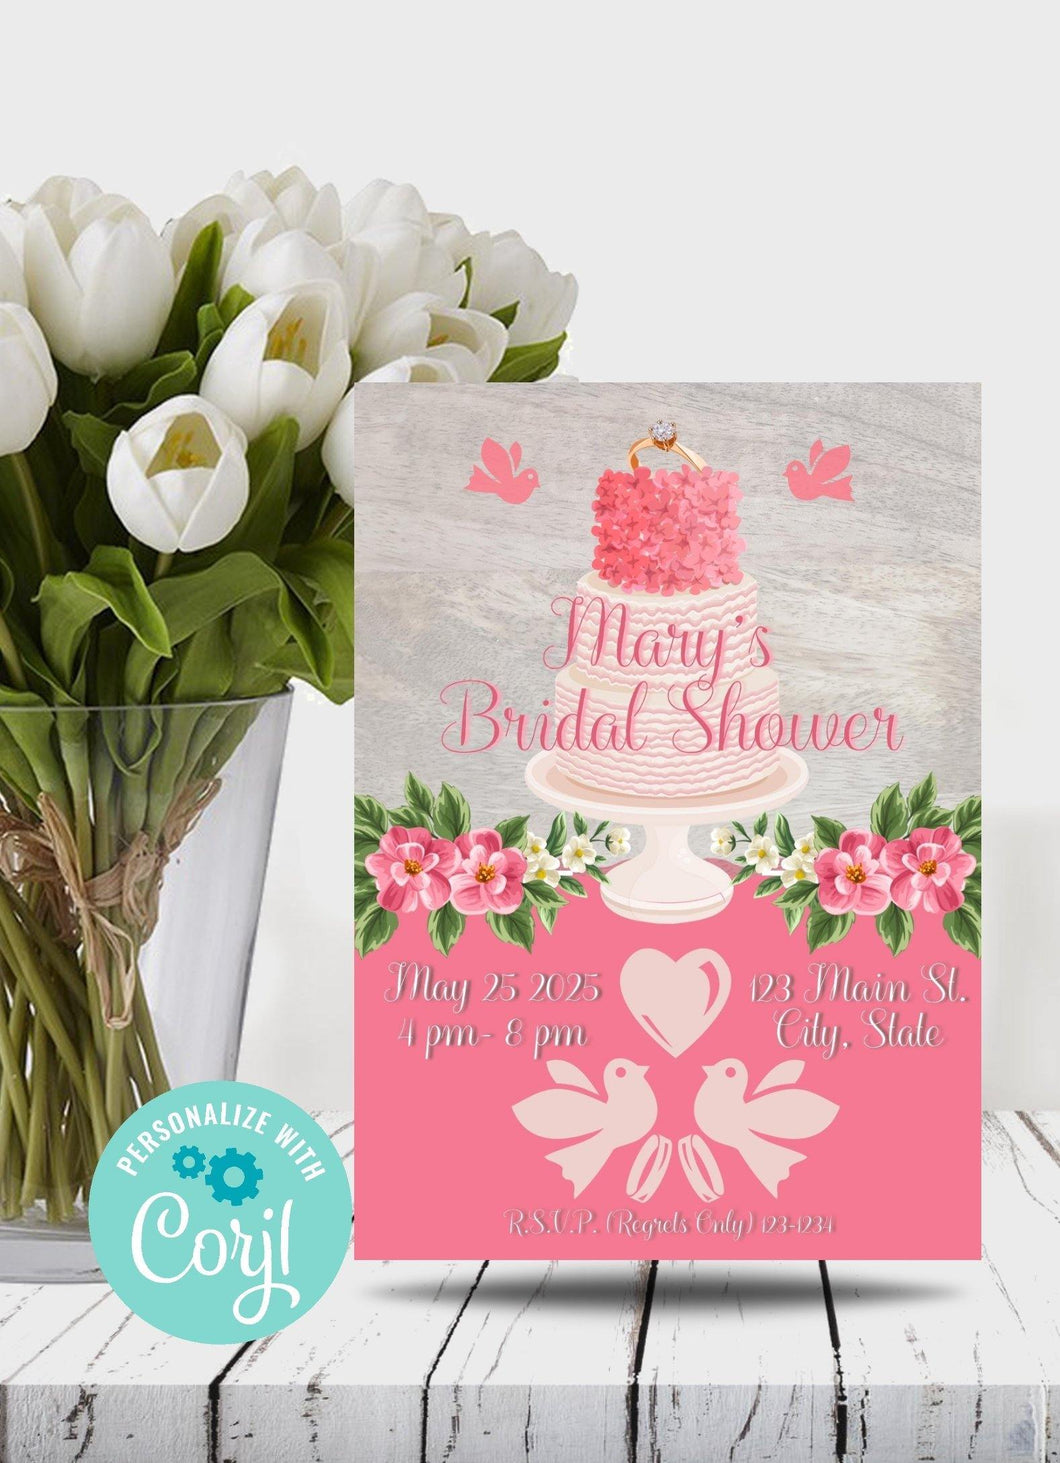 Gray Bridal Shower Cake Party Invitation-Sunny Jar Designs